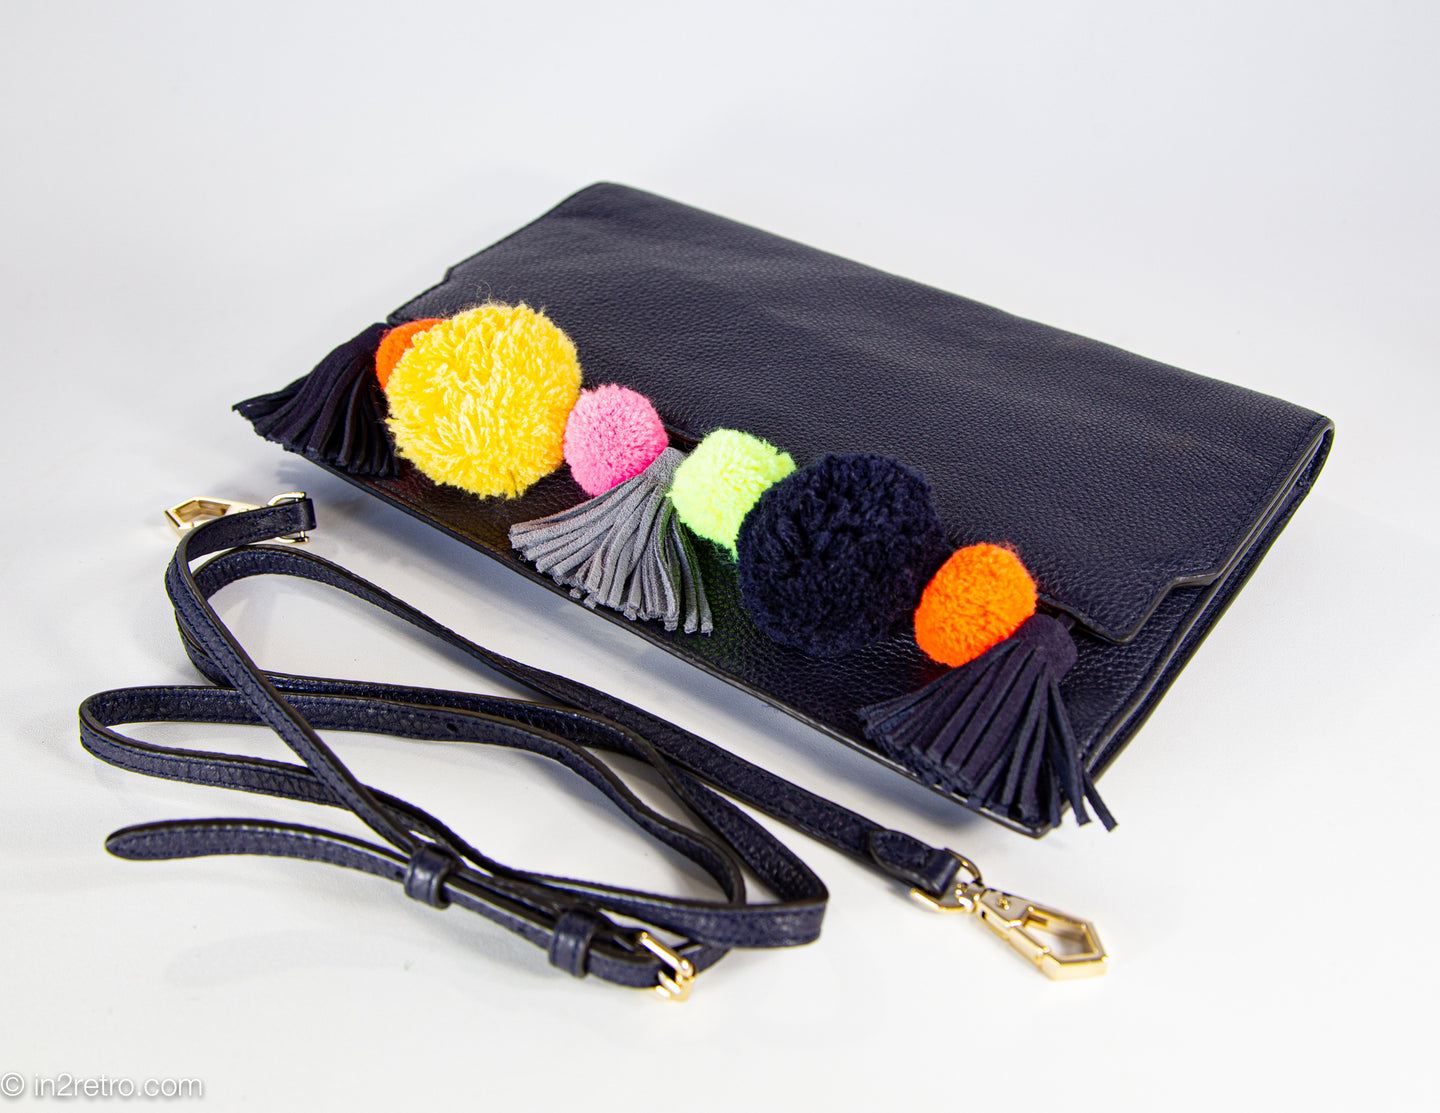 VINTAGE AUTHENTIC REBECCA MINKOFF BLACK PEBBLE LEATHER POMPOM & TASSEL CLUTCH WITH DETACHABLE STRAP